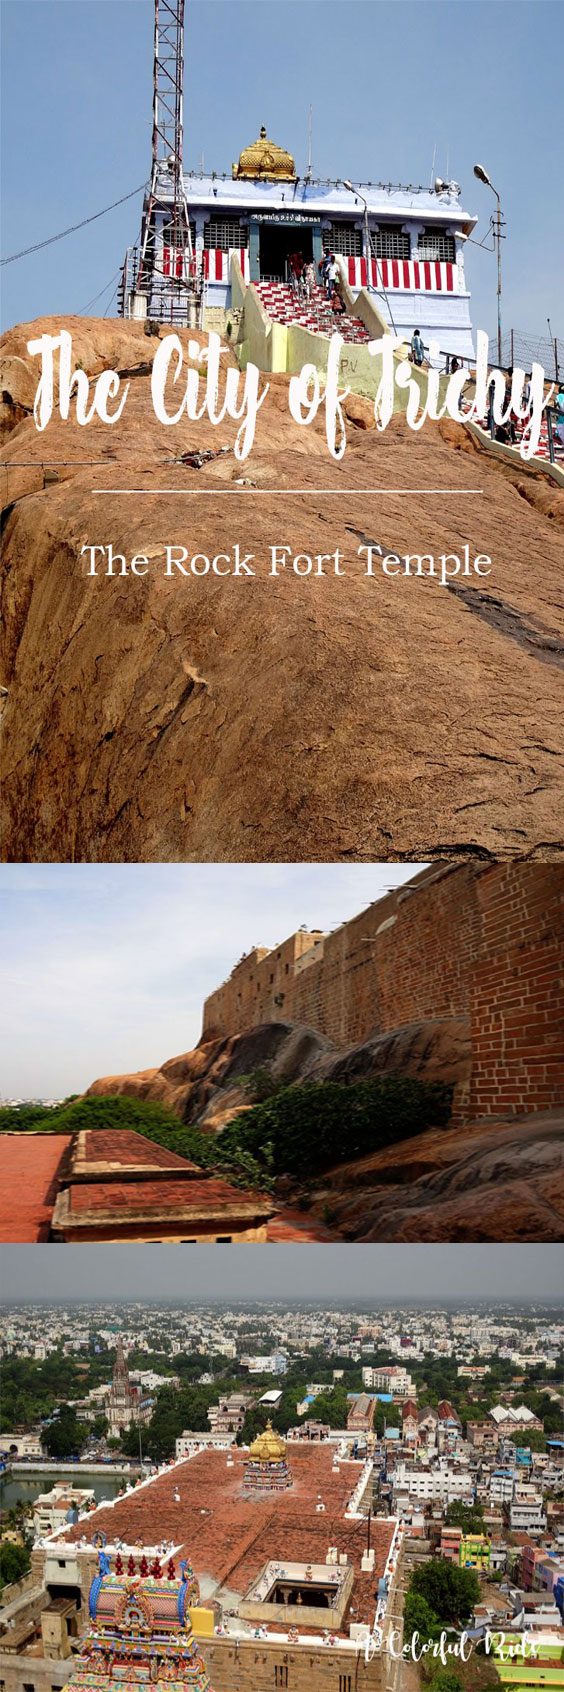 rock fort temple images